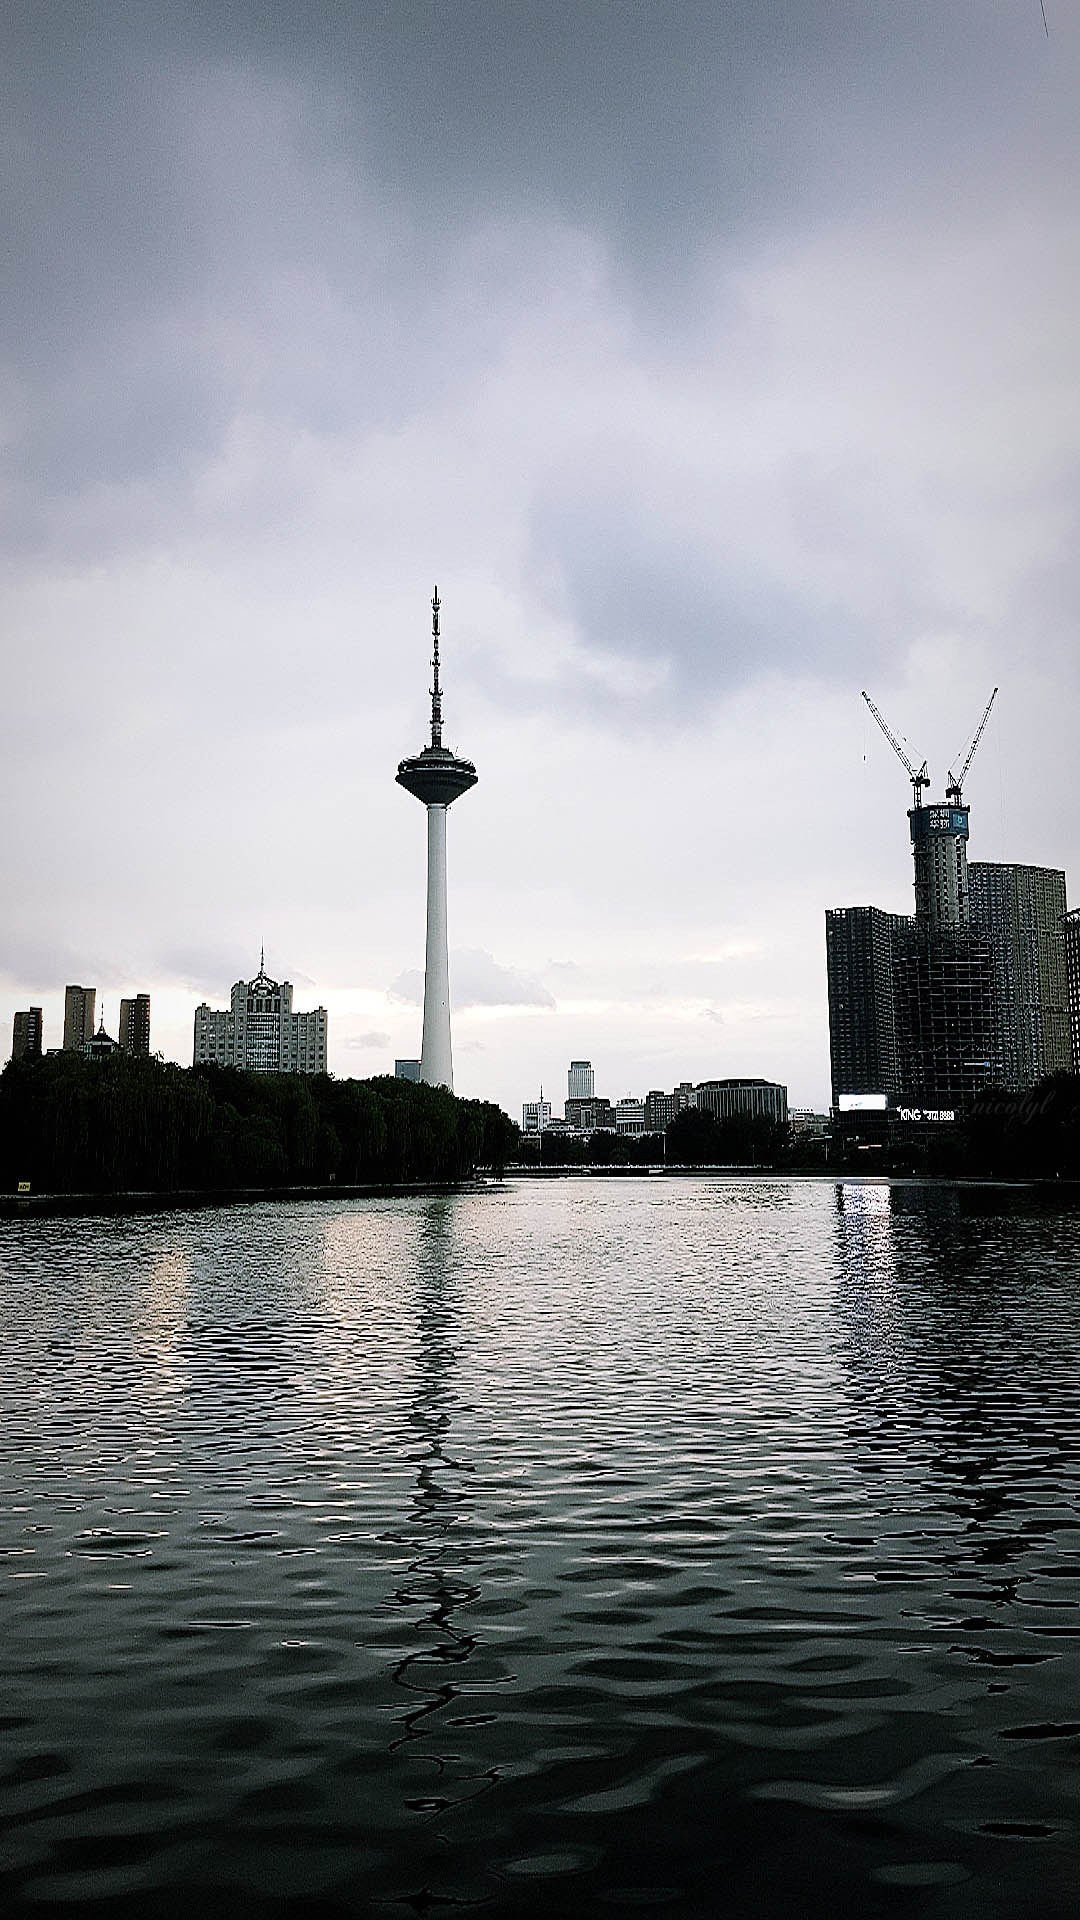 shenyang liaoning youth park sunset tv tower